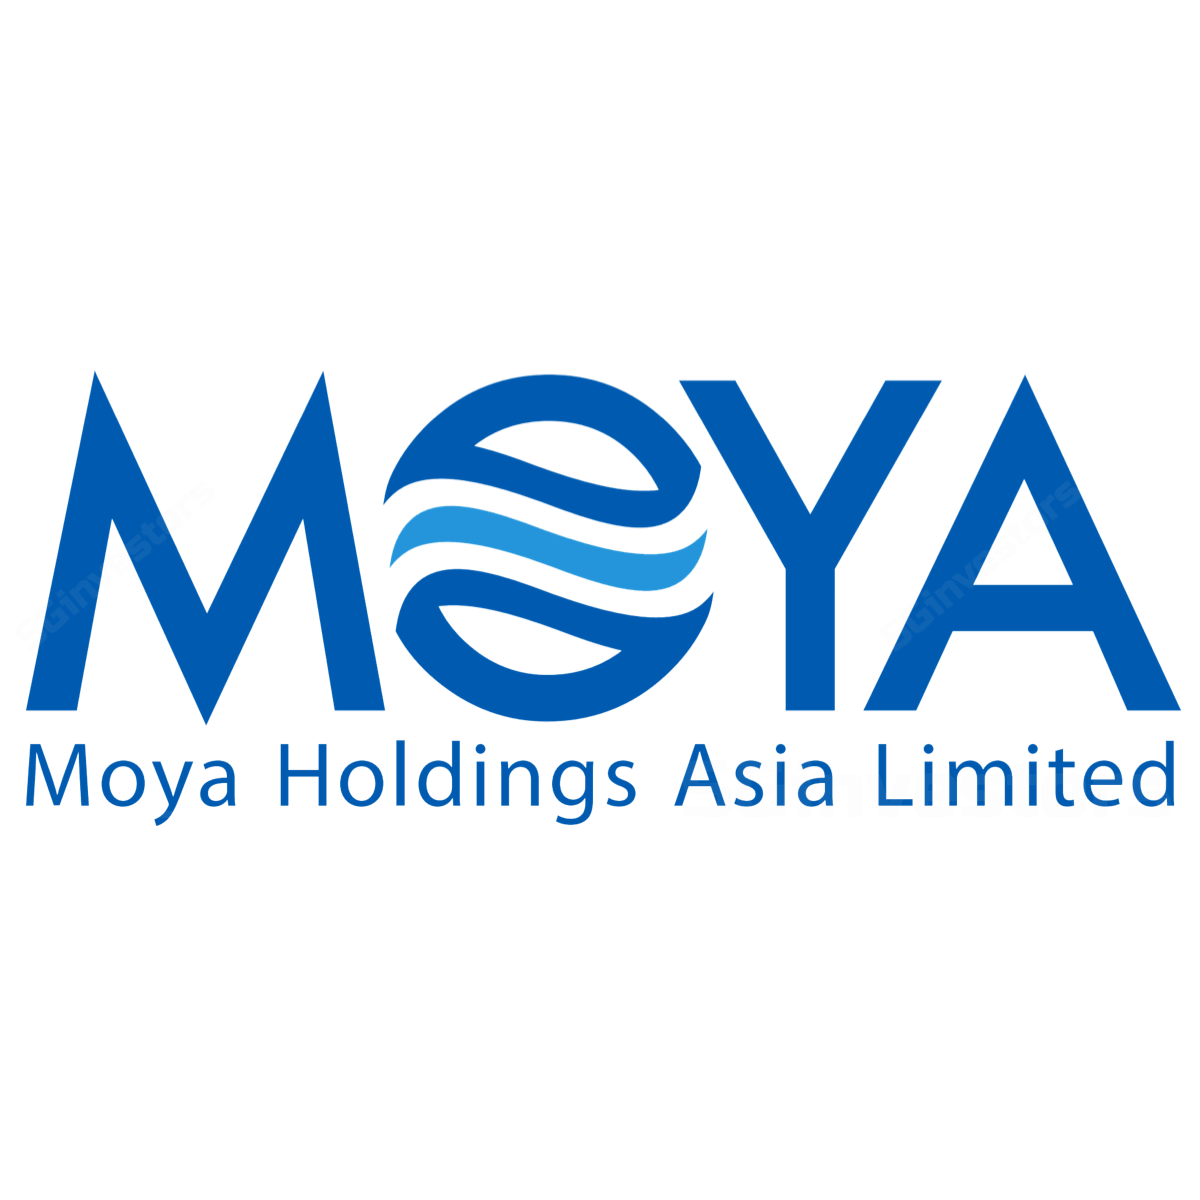 Moya Holdings Asia - RHB Invest 2018-04-09: Vote Of Confidence From PE Fund – Gateway Partners